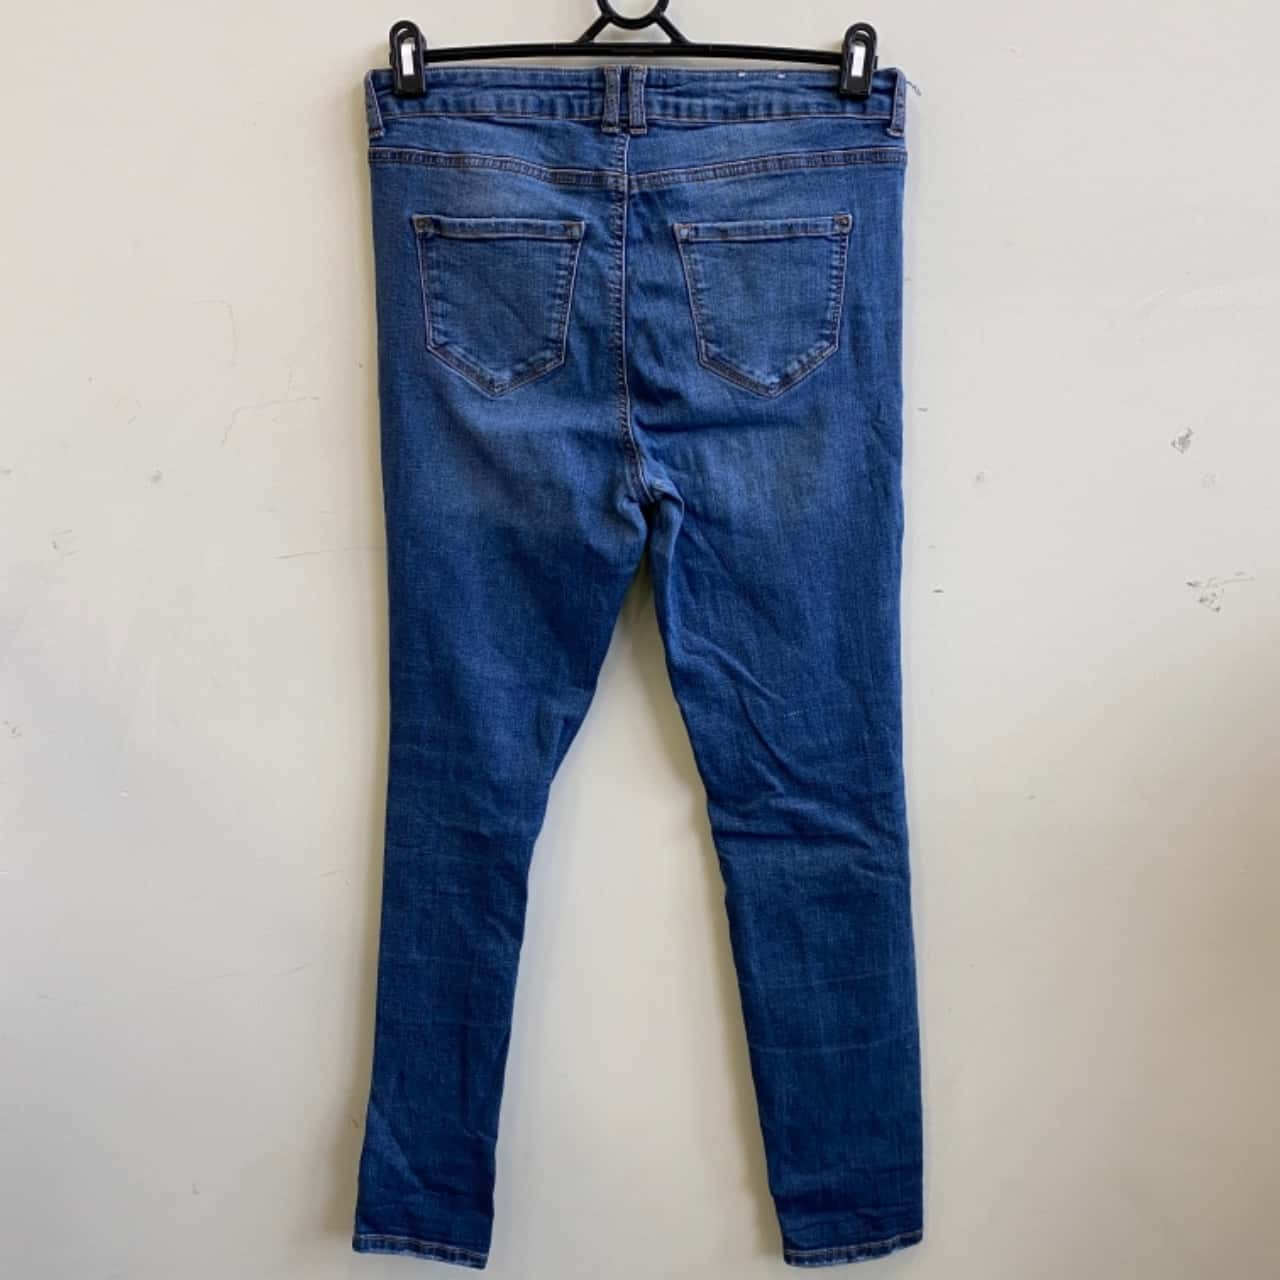 New Look Womens Size 14 Ripped Skinny Blue Jeans